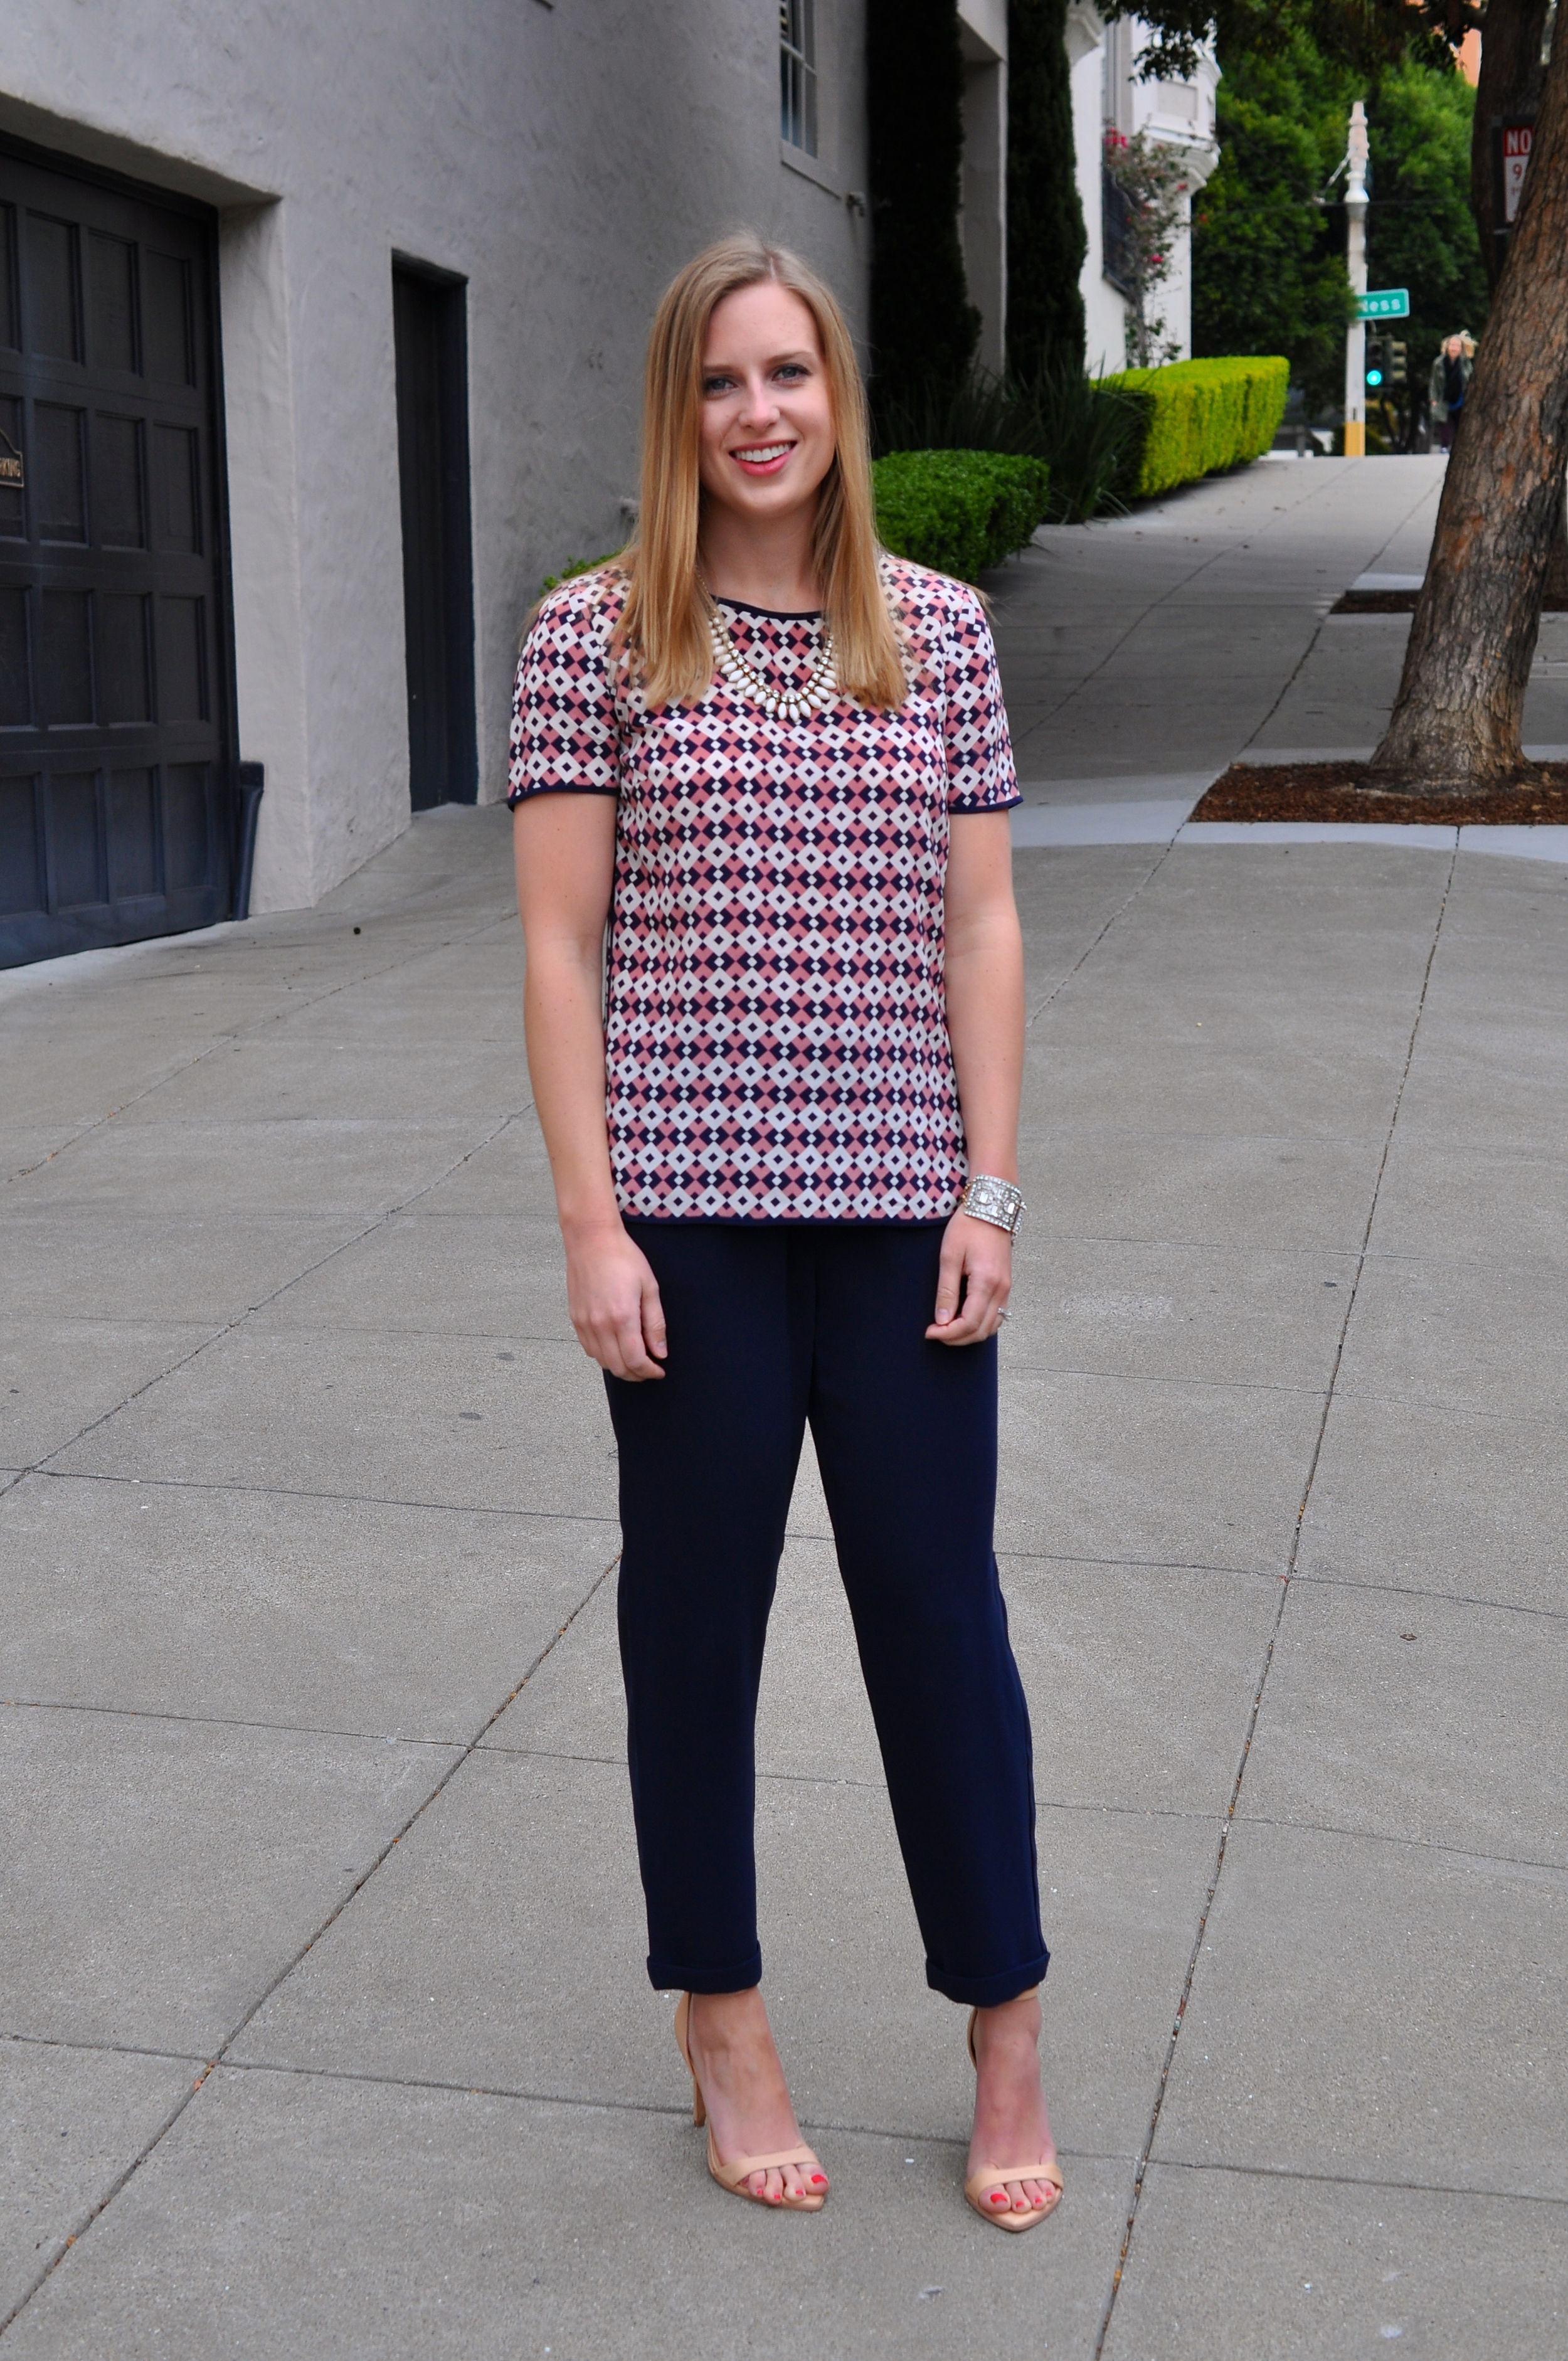 J. Crew blouse, J. Crew pants, Zara heels, J. Crew necklace (old)